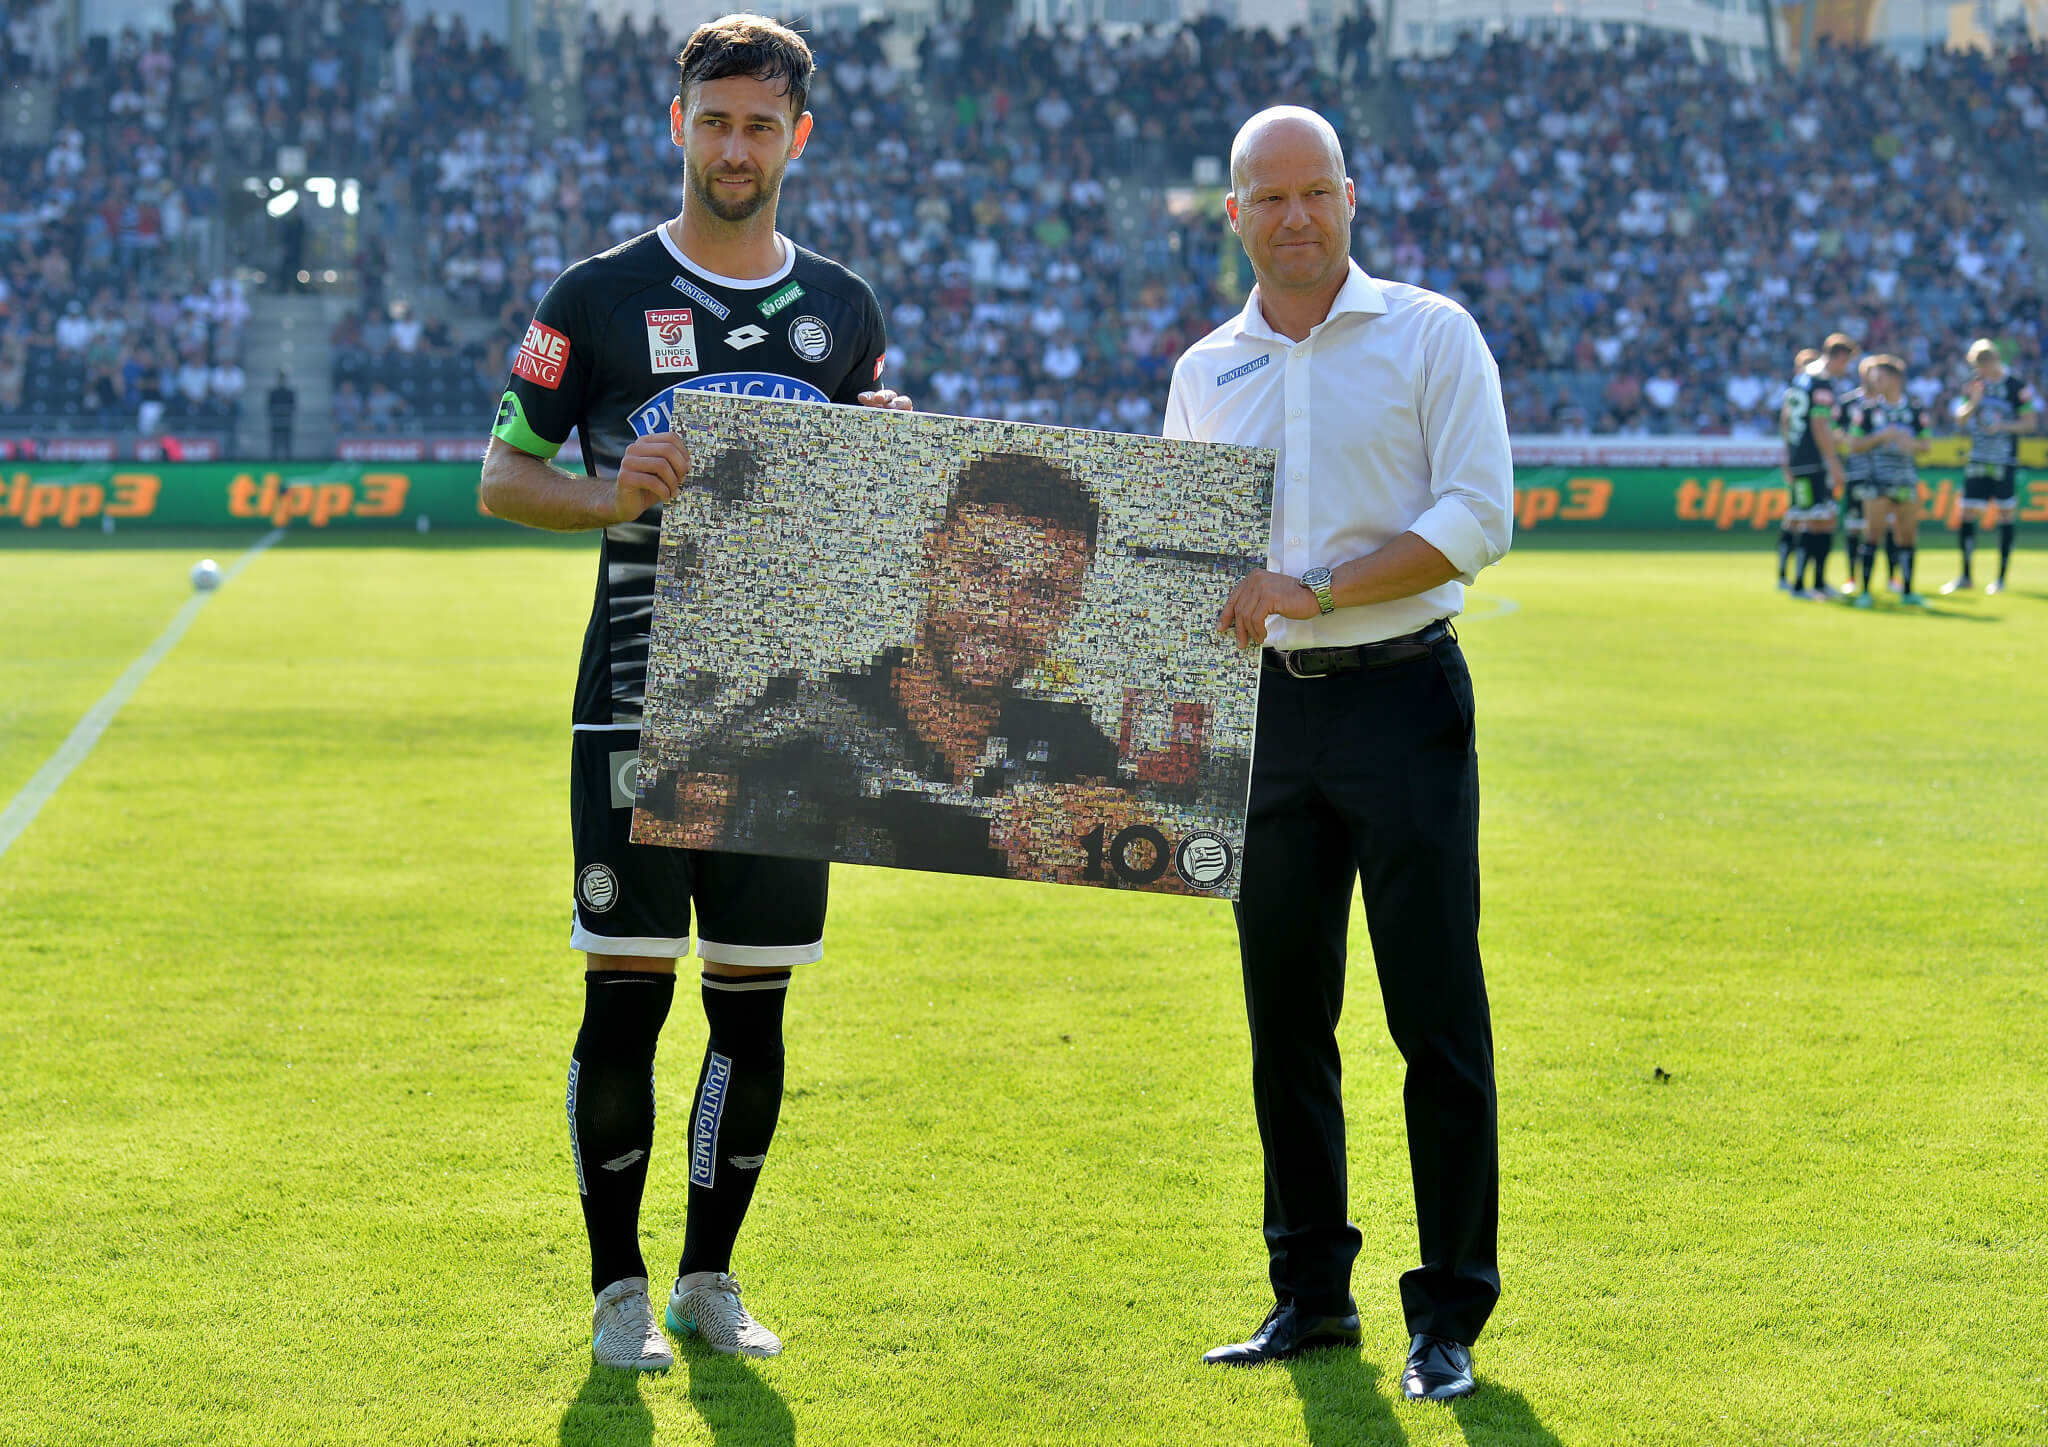 GRAZ,AUSTRIA,30.AUG.15 - SOCCER - tipico Bundesliga, SK Sturm Graz vs Red Bull Salzburg. Image shows Michael Madl and general manager Gerhard Goldbrich (Sturm). Photo: GEPA pictures/ Michael Riedler